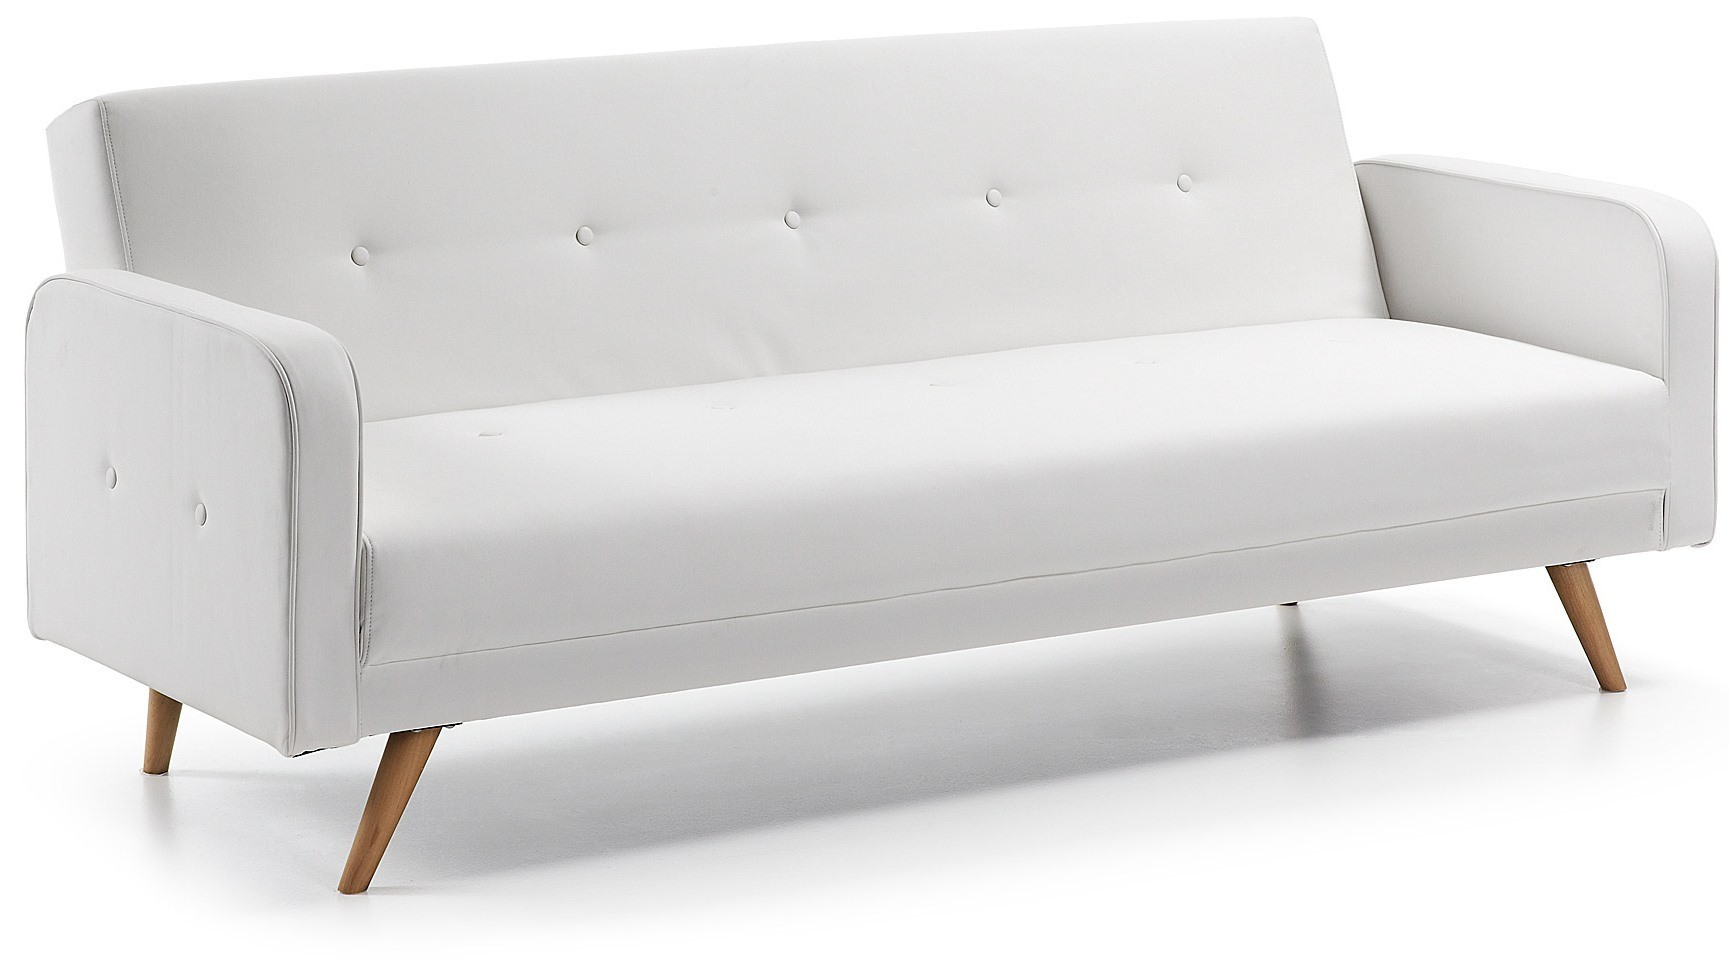 Divano Letto Ecopelle Beige.White Leather Sofa Bed 3 Seater Ready Roberto With Wooden Feet